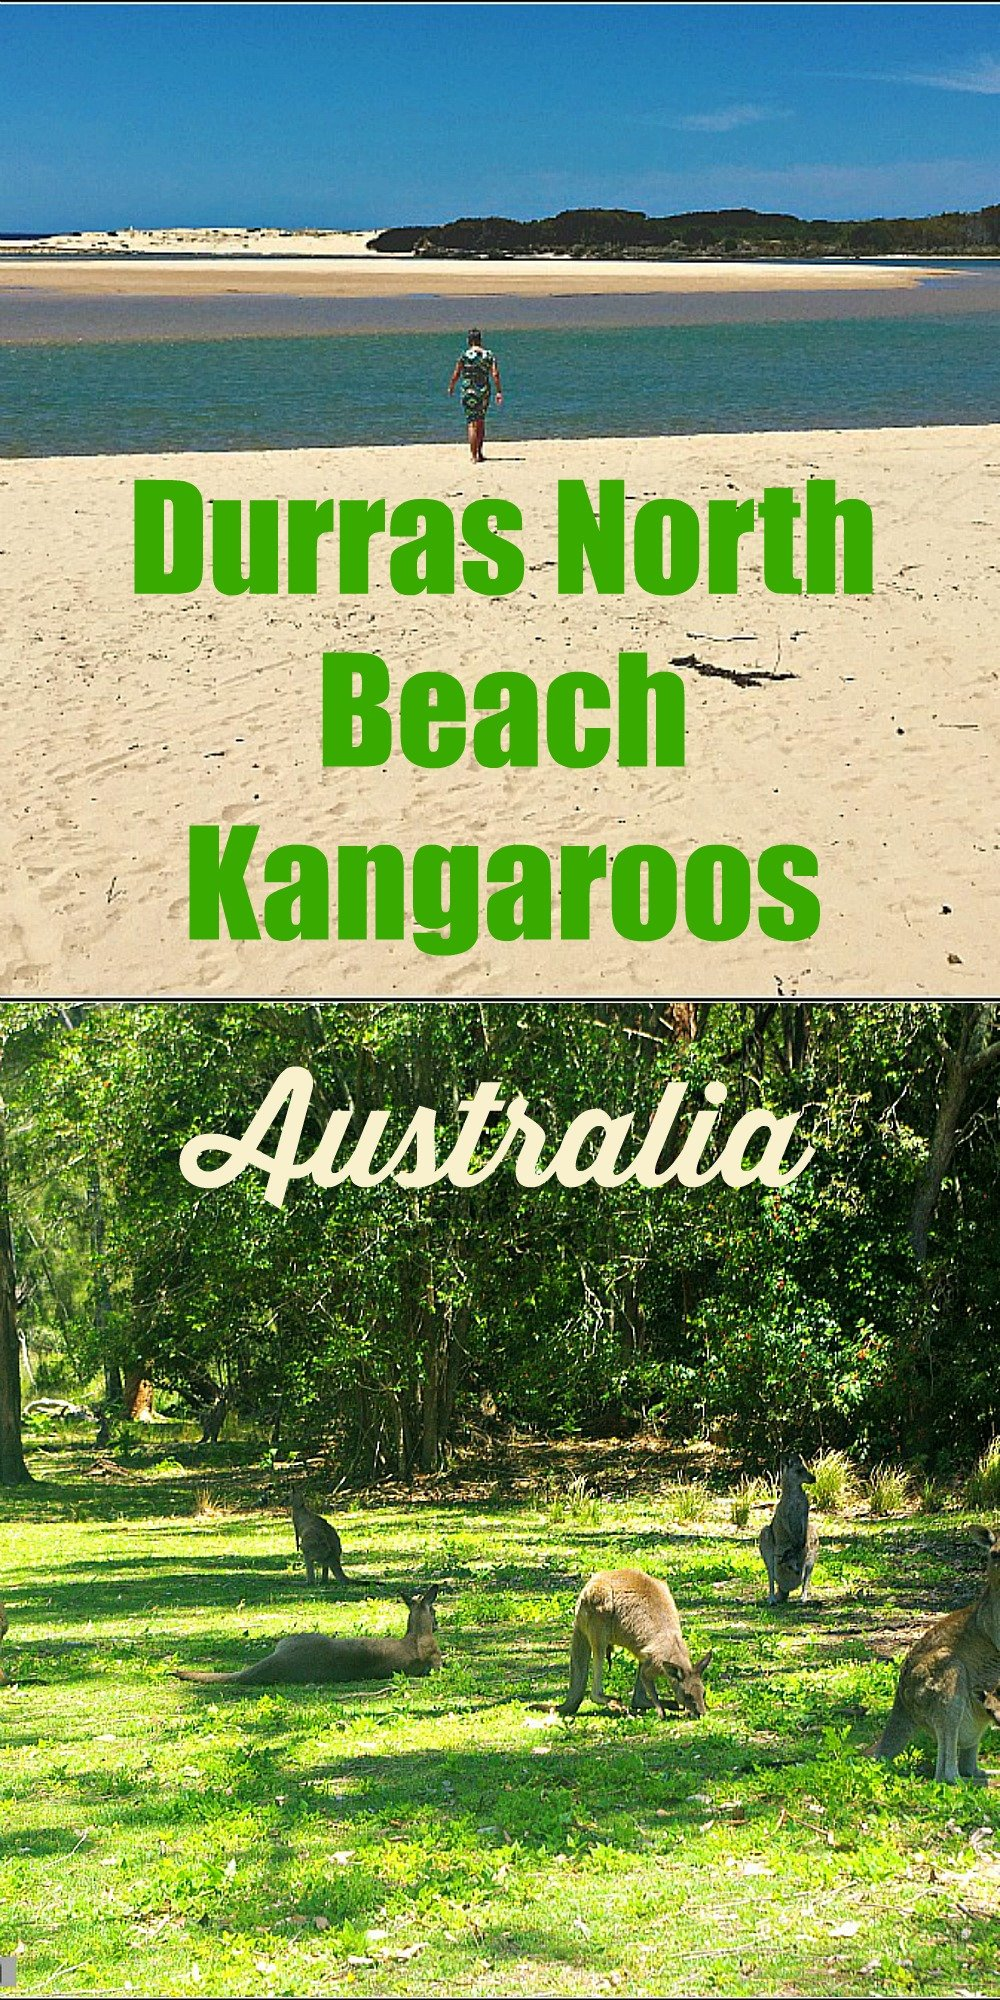 Durras North Beach is a great place to picnic and kangaroo watch